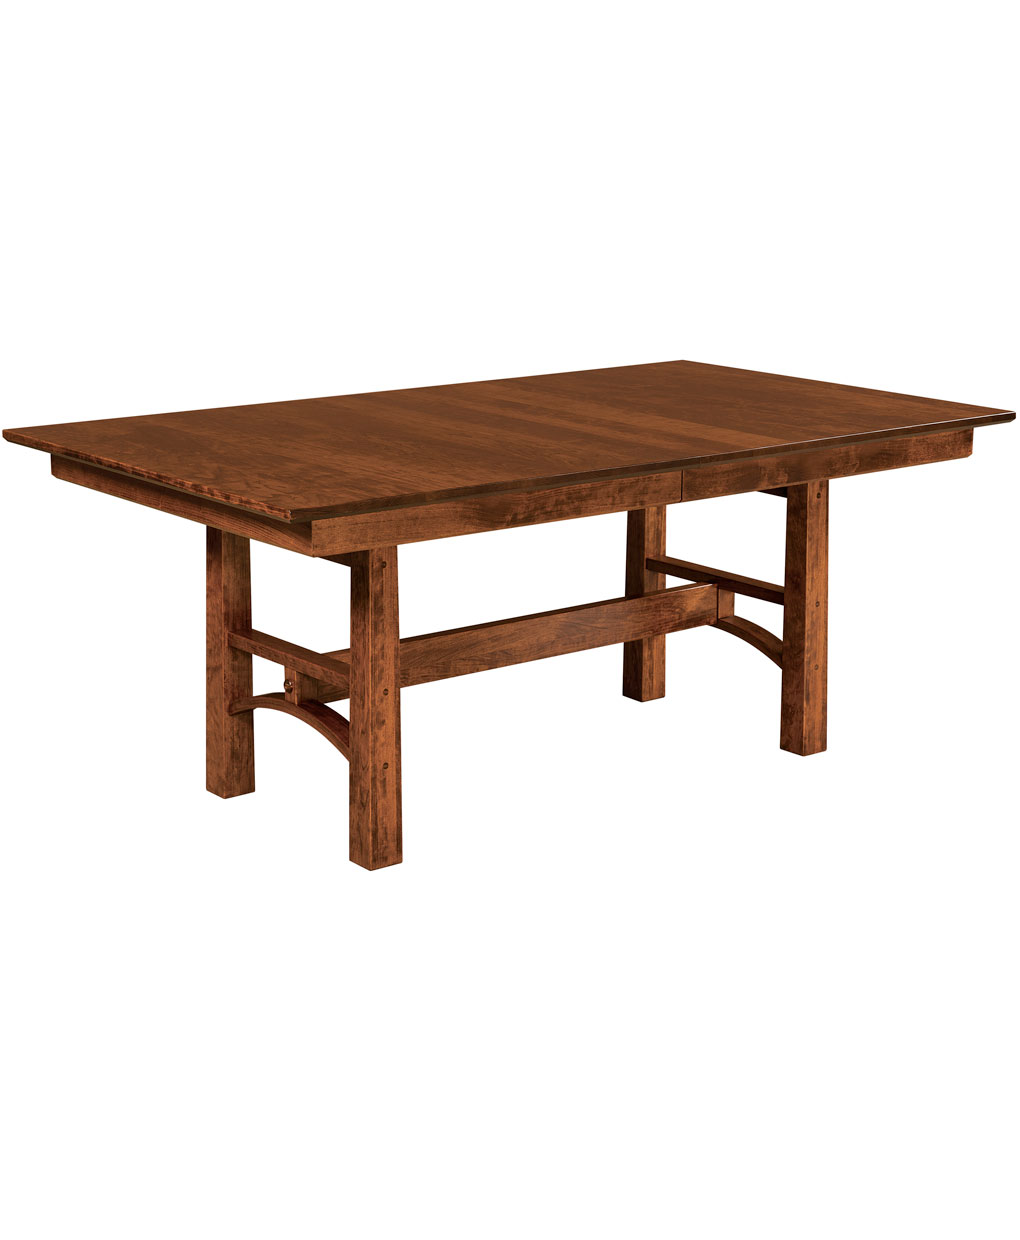 Trestle Table Amish Dining Room: Bridgeport Trestle Table